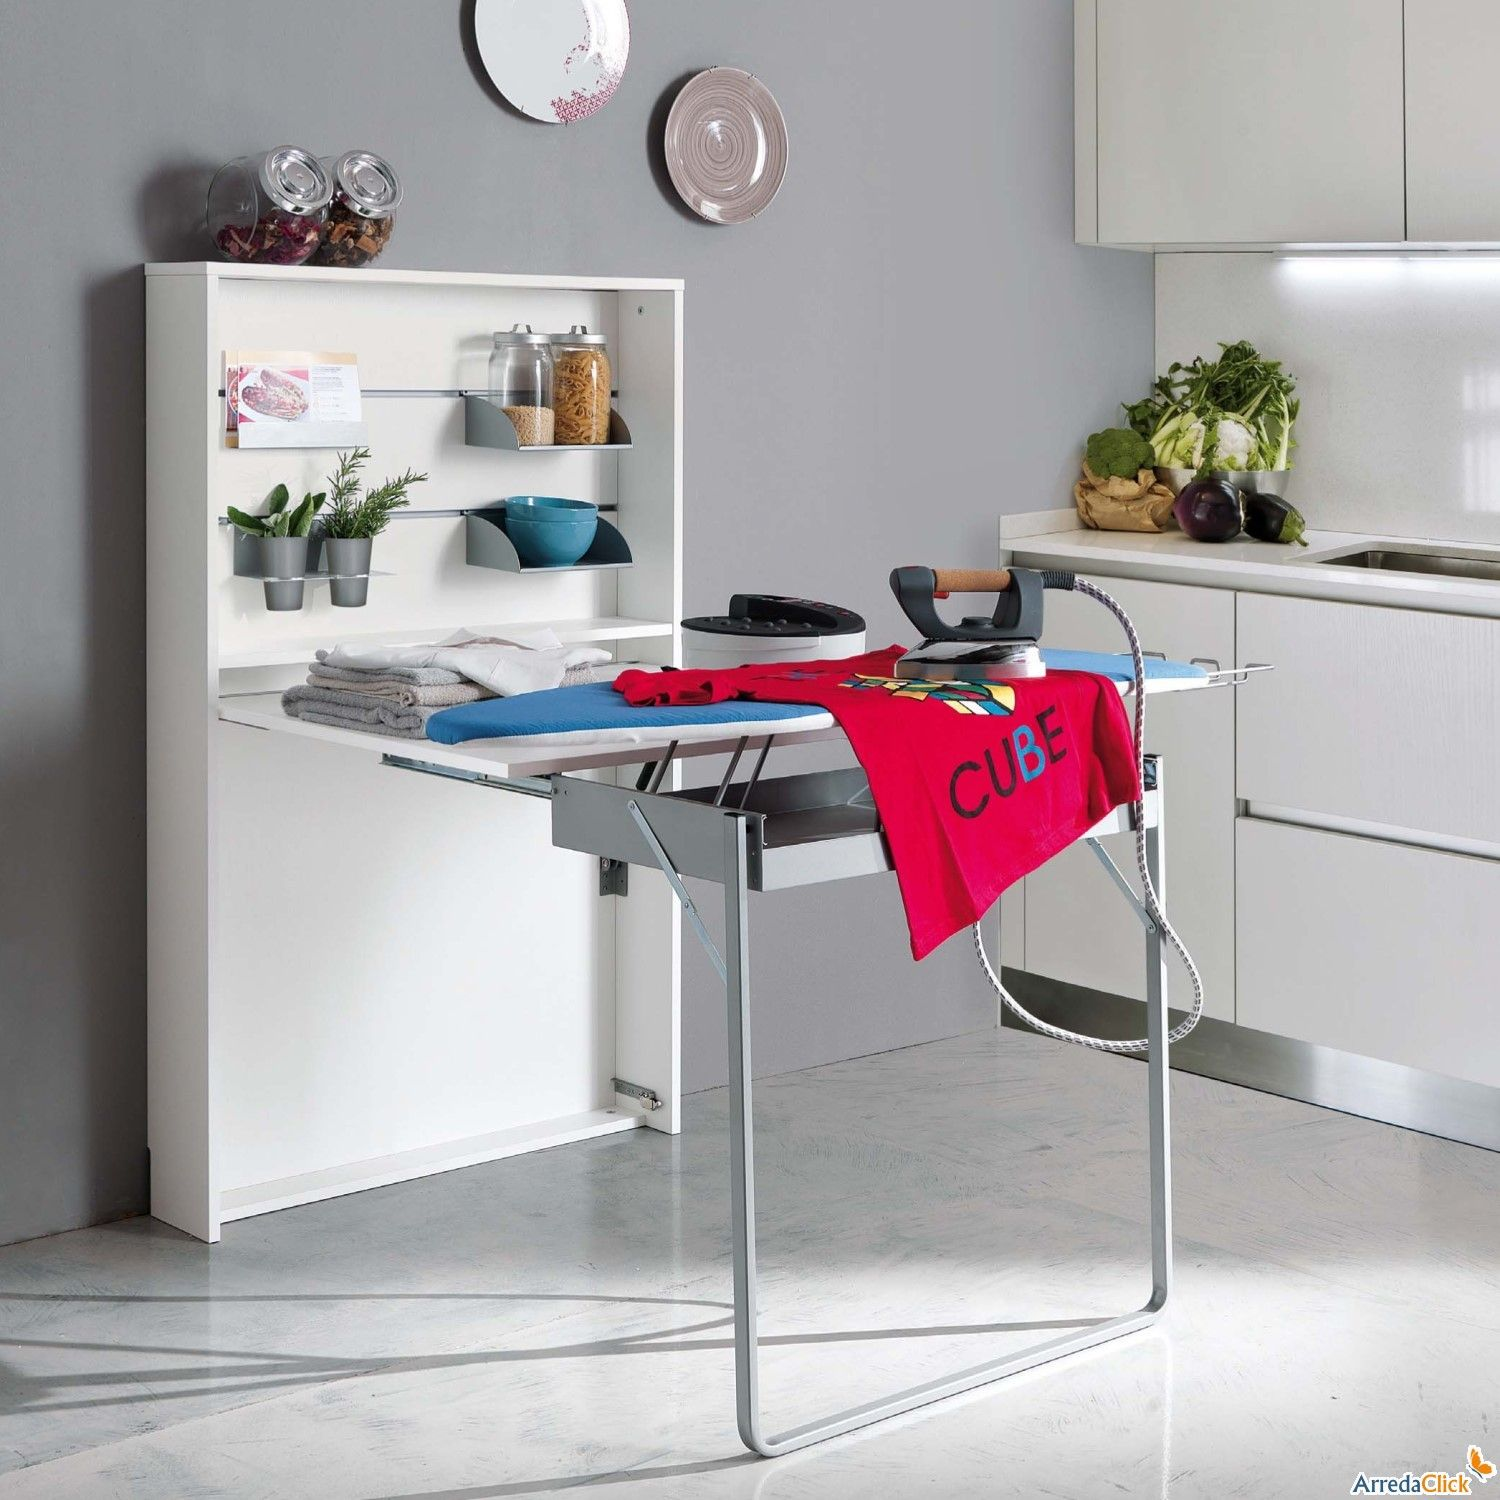 kitchen console table Furniture Beautiful Stylish Kitchen Design With Expandable Console Table Into Dining Console Table Or Ironing